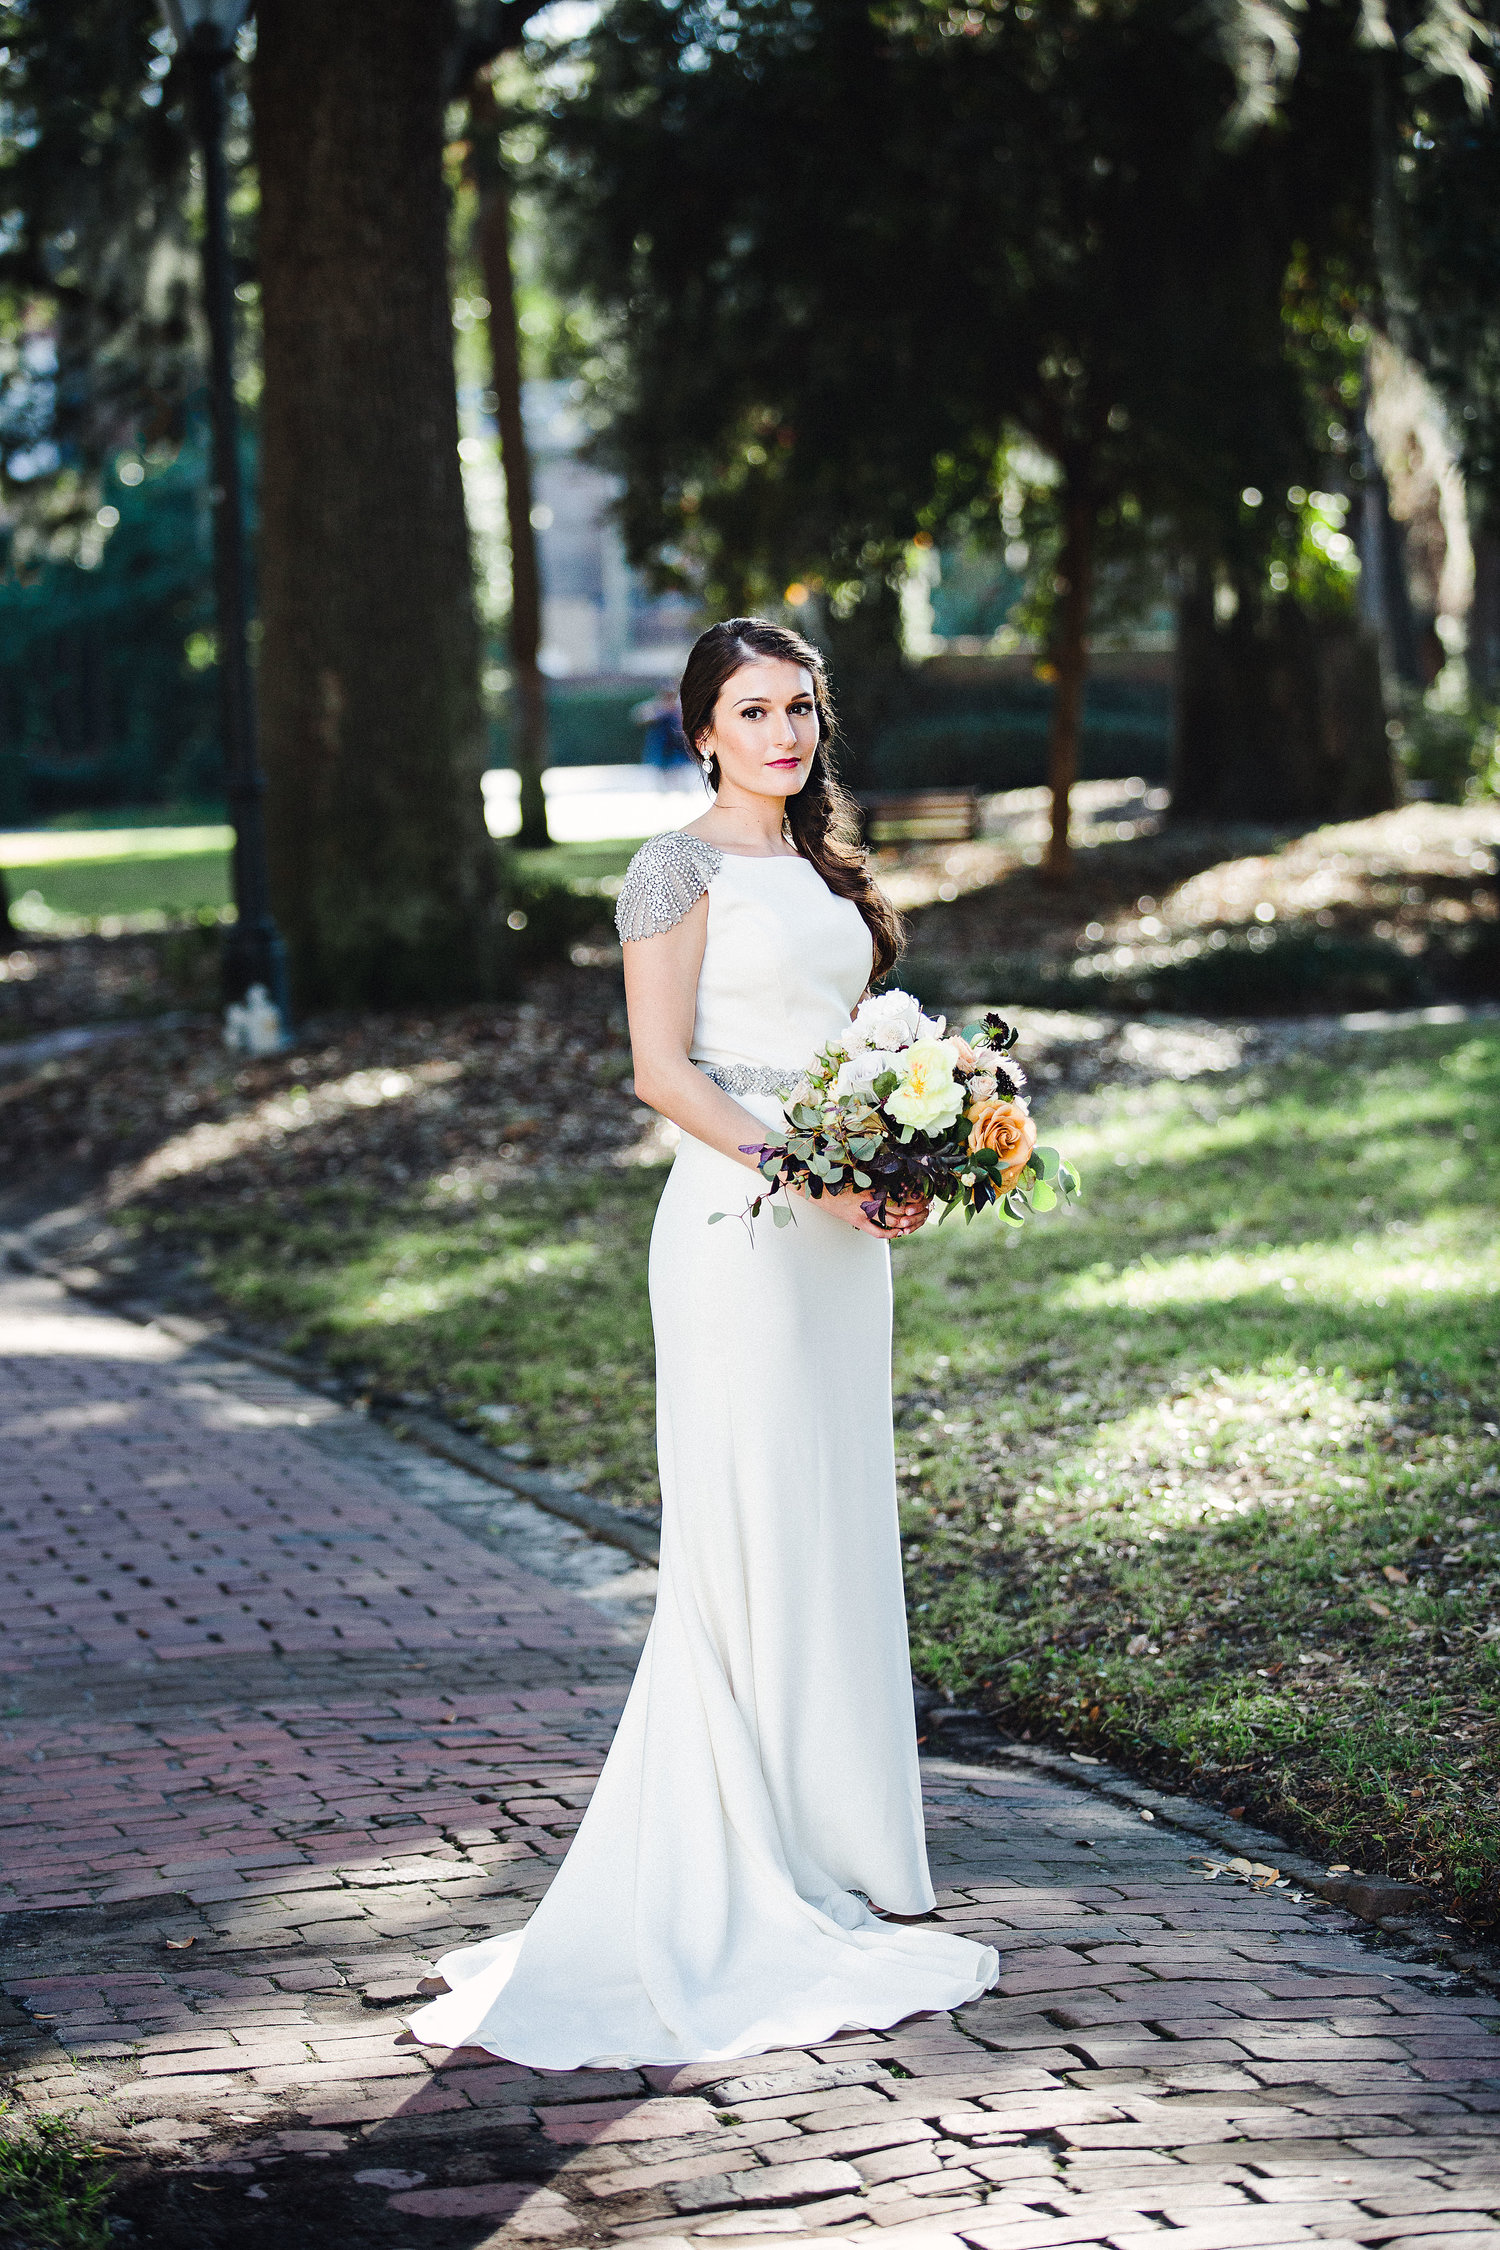 izzy-hudgins-photography-savannah-wedding-ivory-and-beau-bridal-boutique-savannah-wedding-planner-colonial-house-of-flowers-forsyth-park-wedding-old-fort-jackson-wedding-squidwed-films-savannah-boutique-savannah-weddings-20.jpg